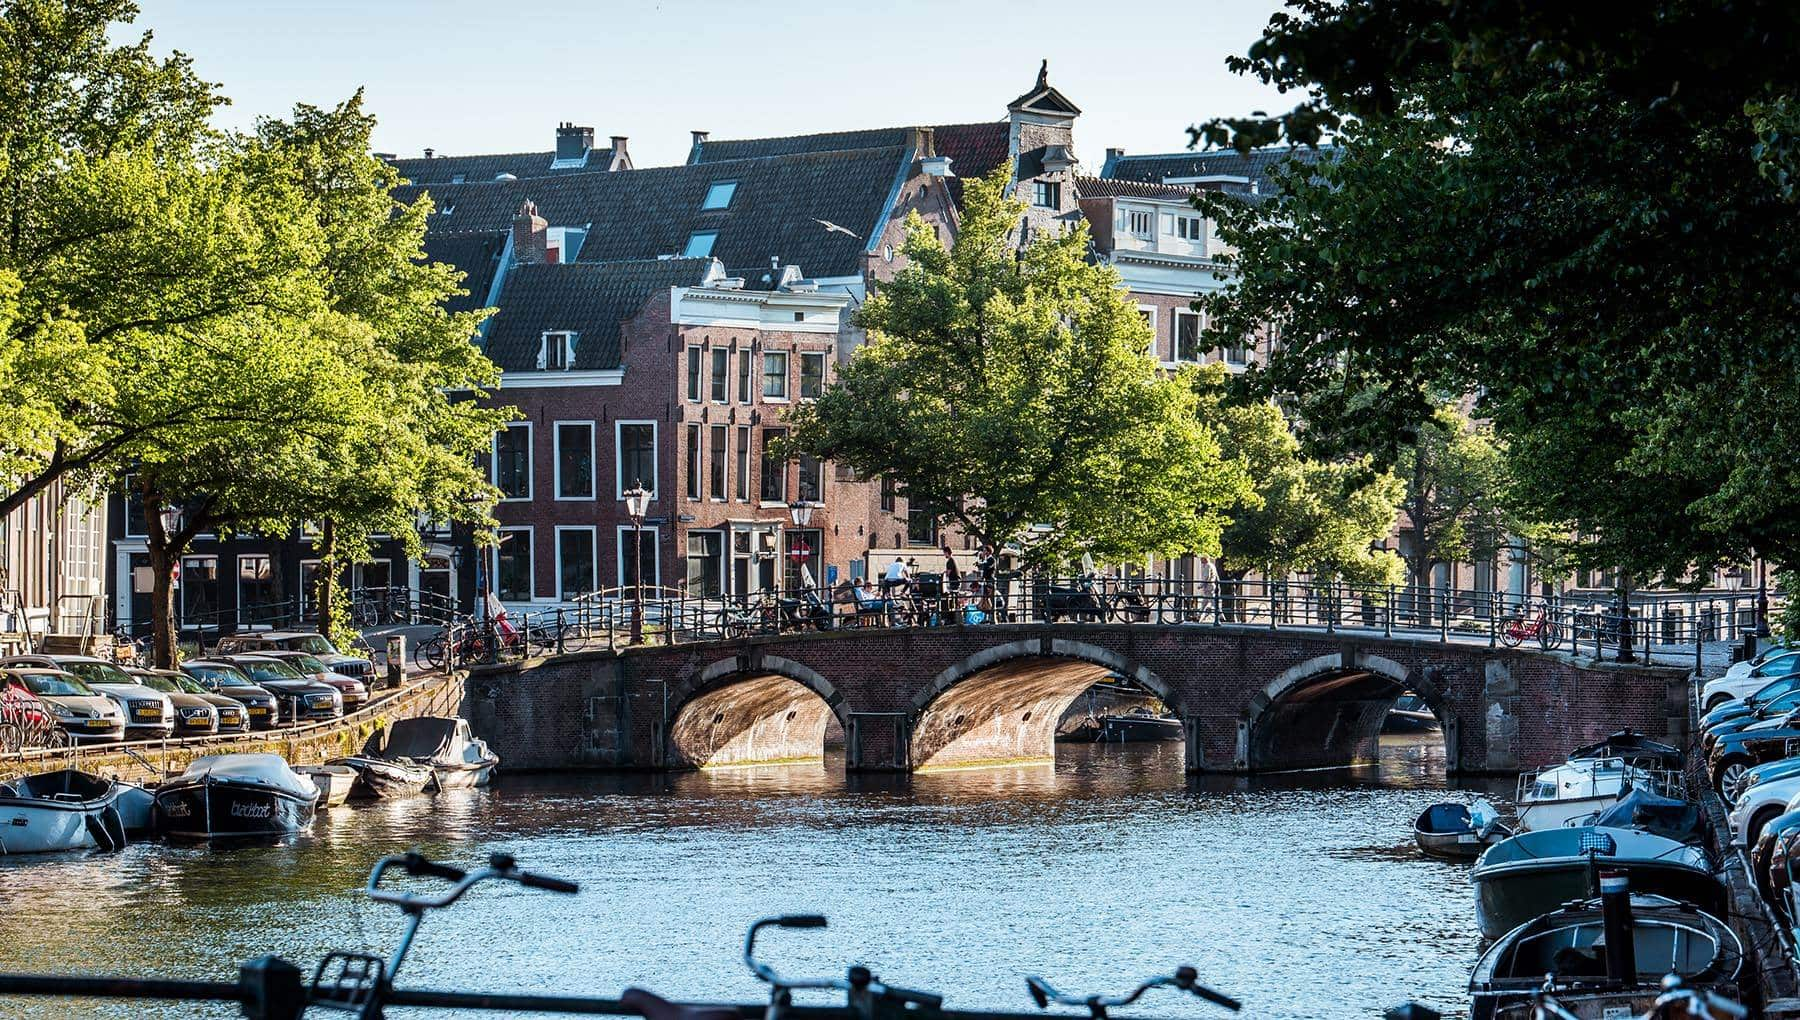 Atlanta to Amsterdam Netherlands $444 RT Airfares on Delta Airlines / KLM Economy Light (Limited Travel Oct - March 2020)